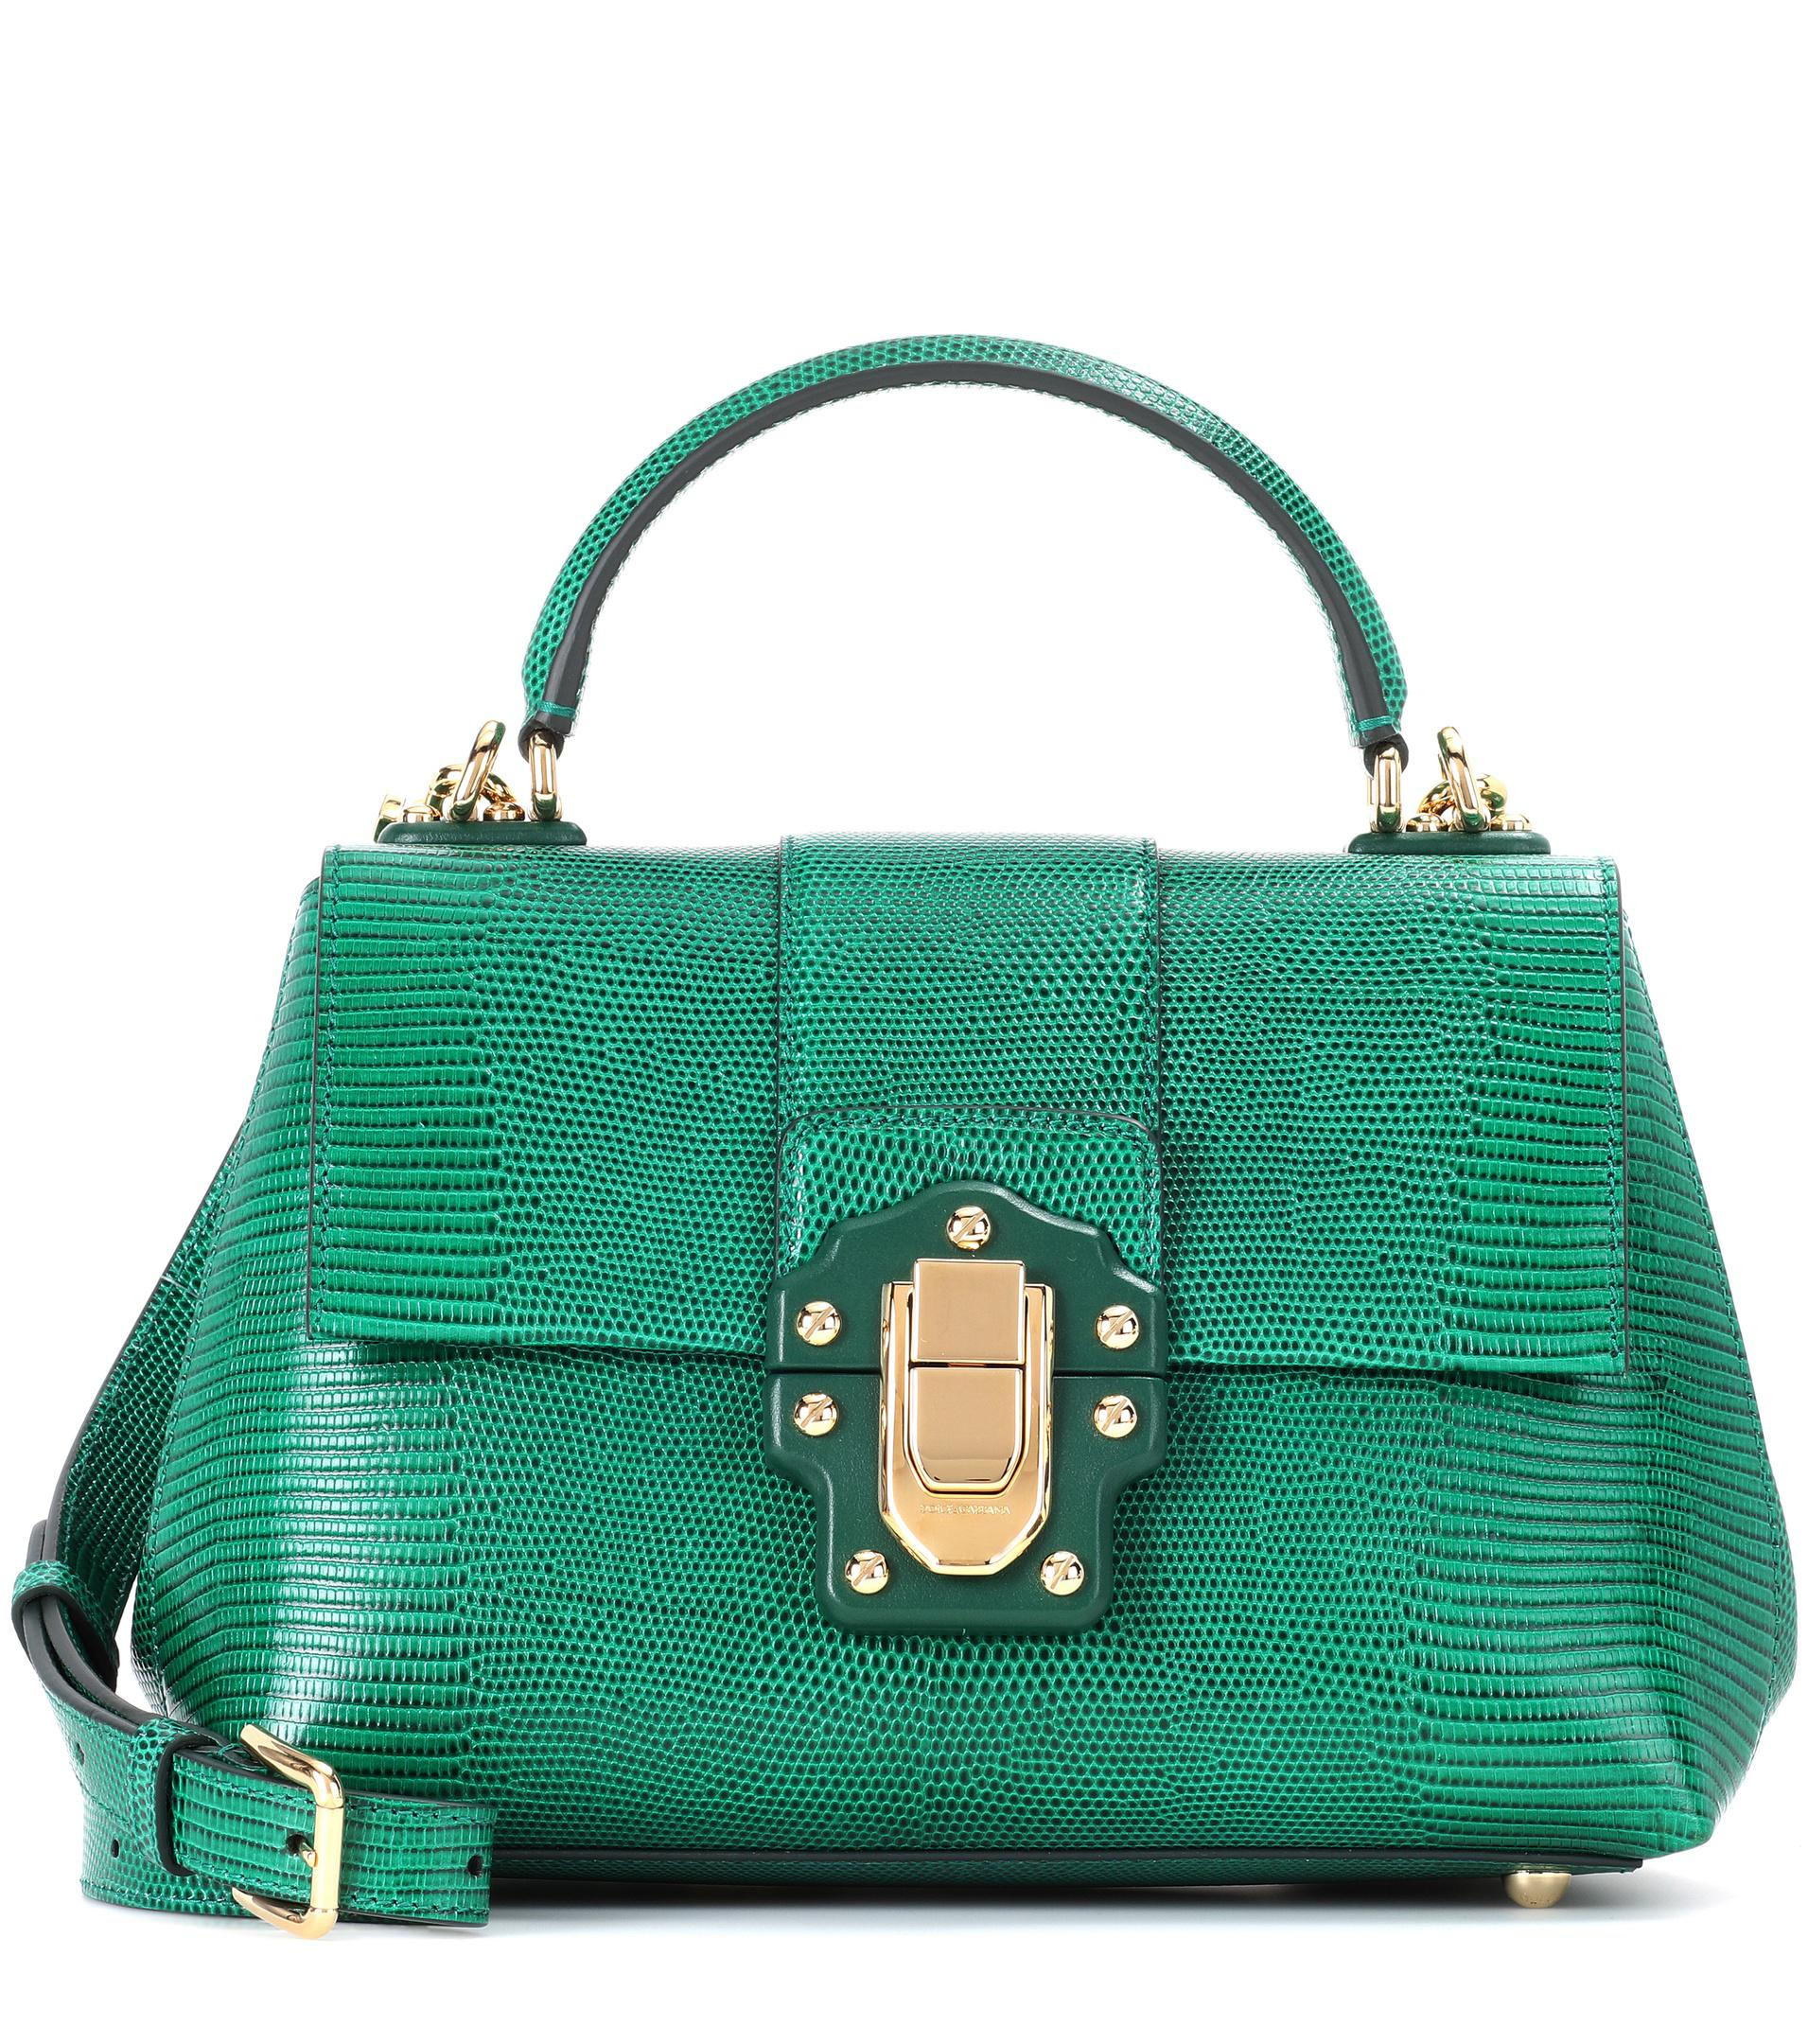 ecf262276d8c Lyst - Dolce   Gabbana Lucia Small Embossed Leather Shoulder Bag in ...